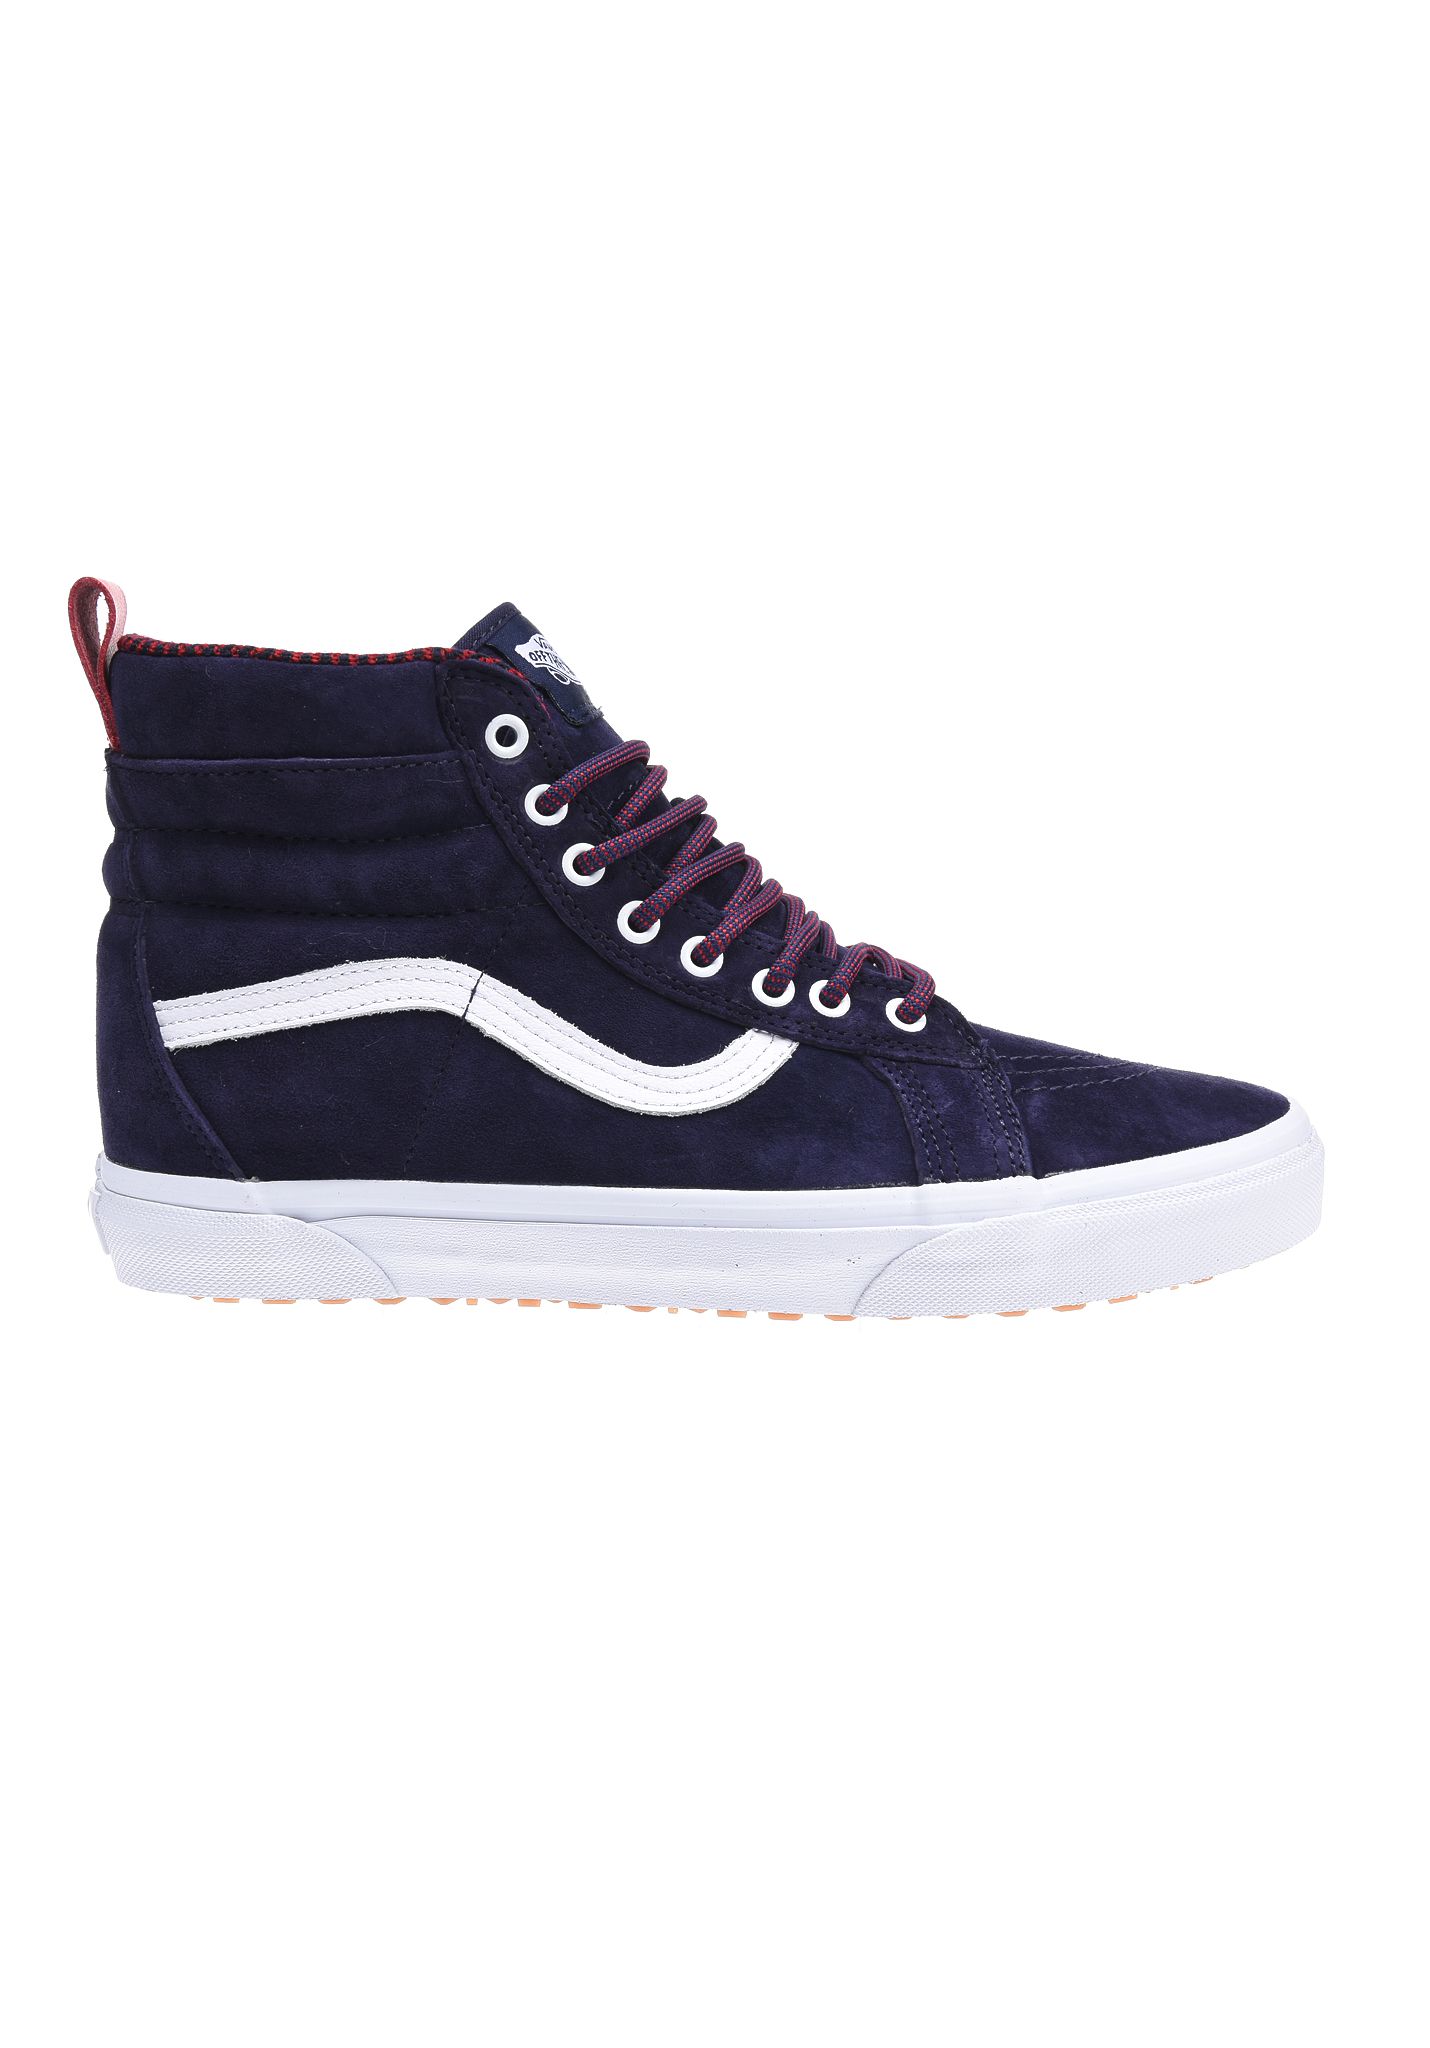 vans sk8 hi mte herren damen sneaker turnschuhe freizeit. Black Bedroom Furniture Sets. Home Design Ideas